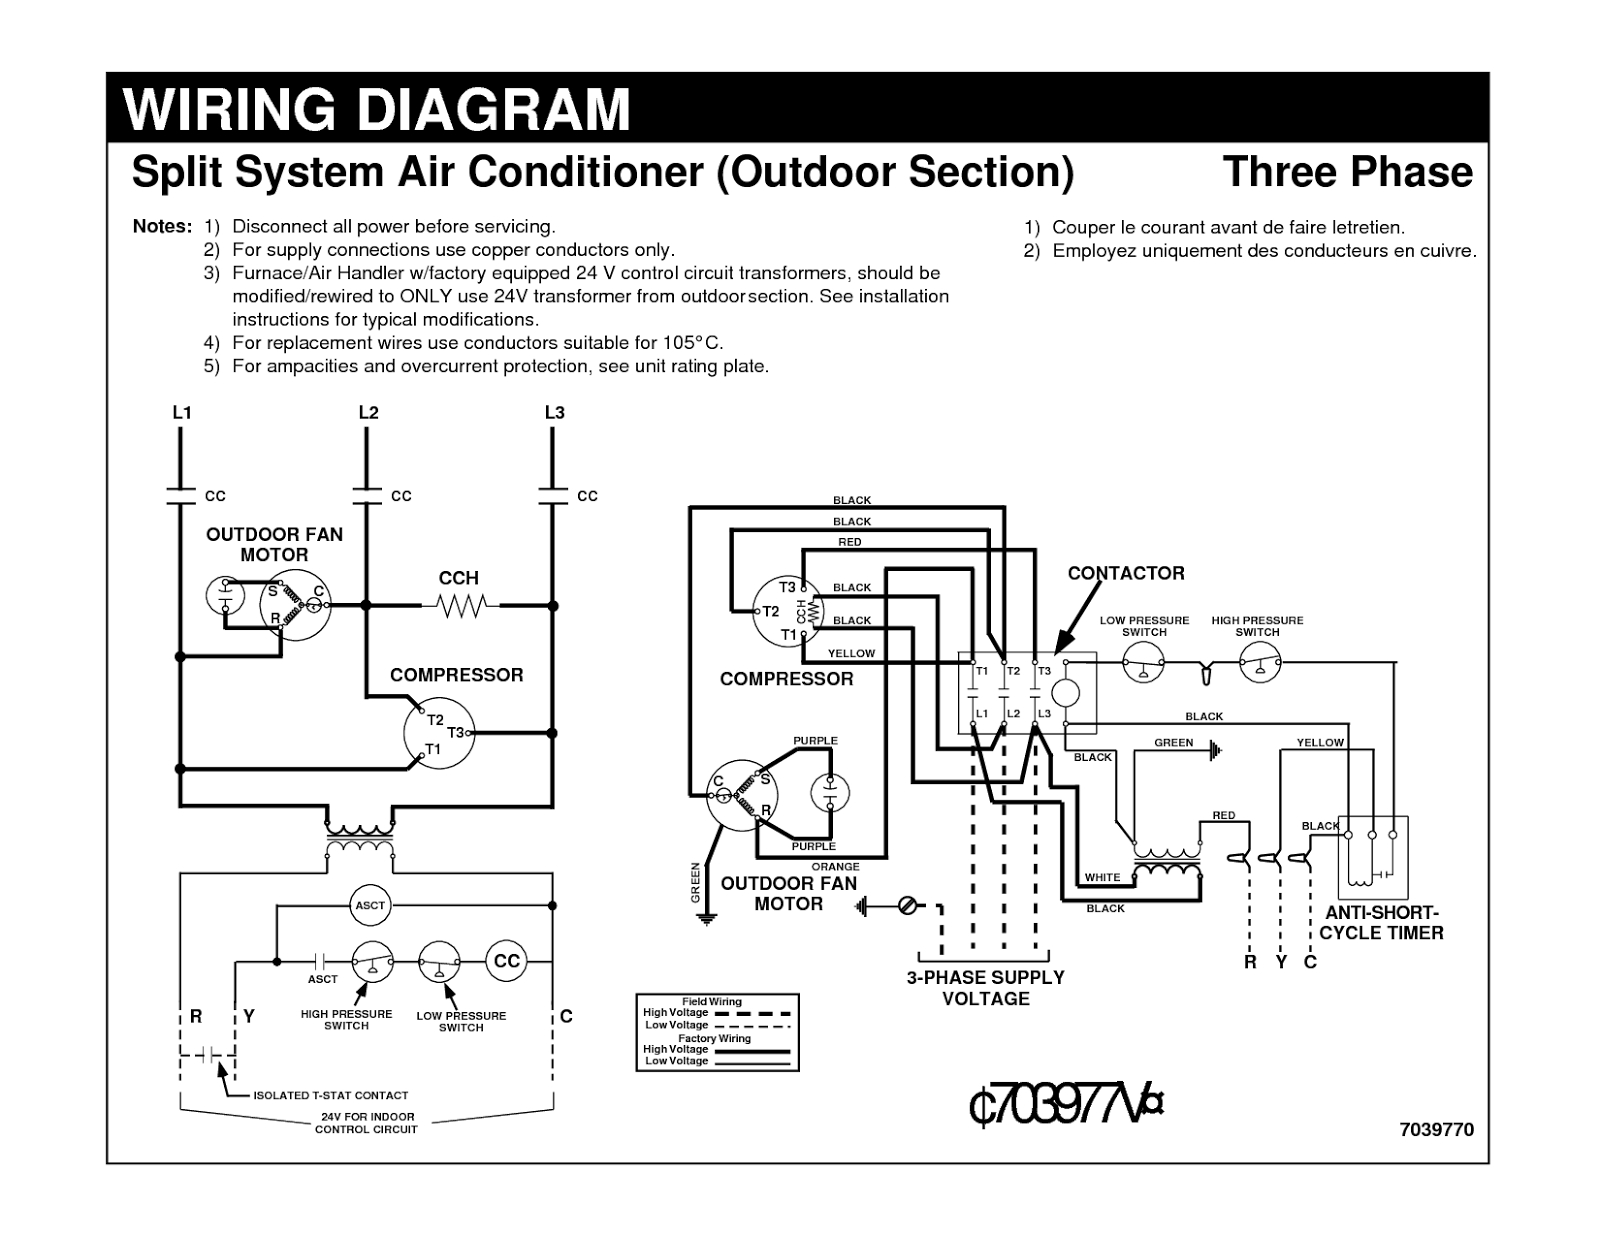 Ac Unit Wiring | Wiring Diagram - Central Ac Wiring Diagram